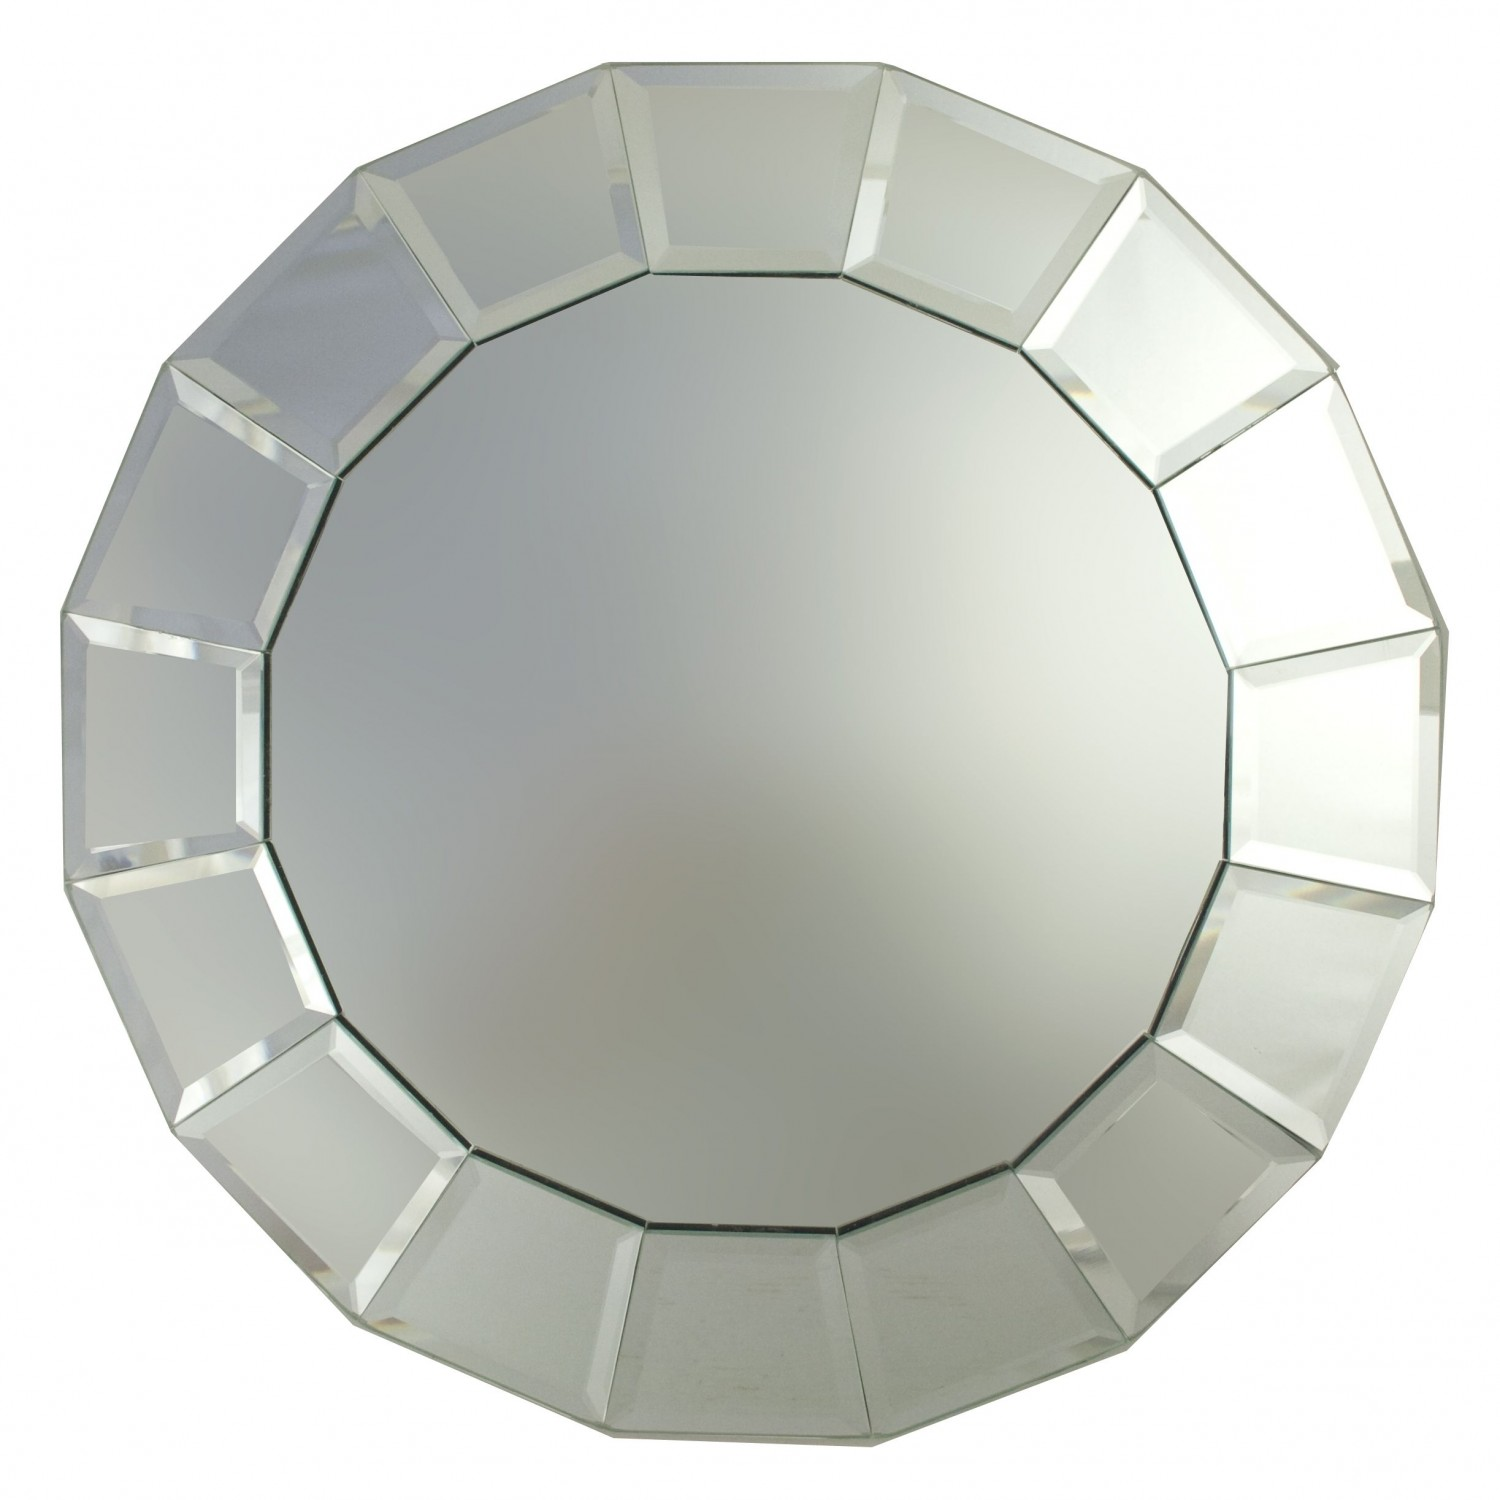 The Jay Companies 1330094 Round Beveled Block Glass Mirror Charger Plate 13""